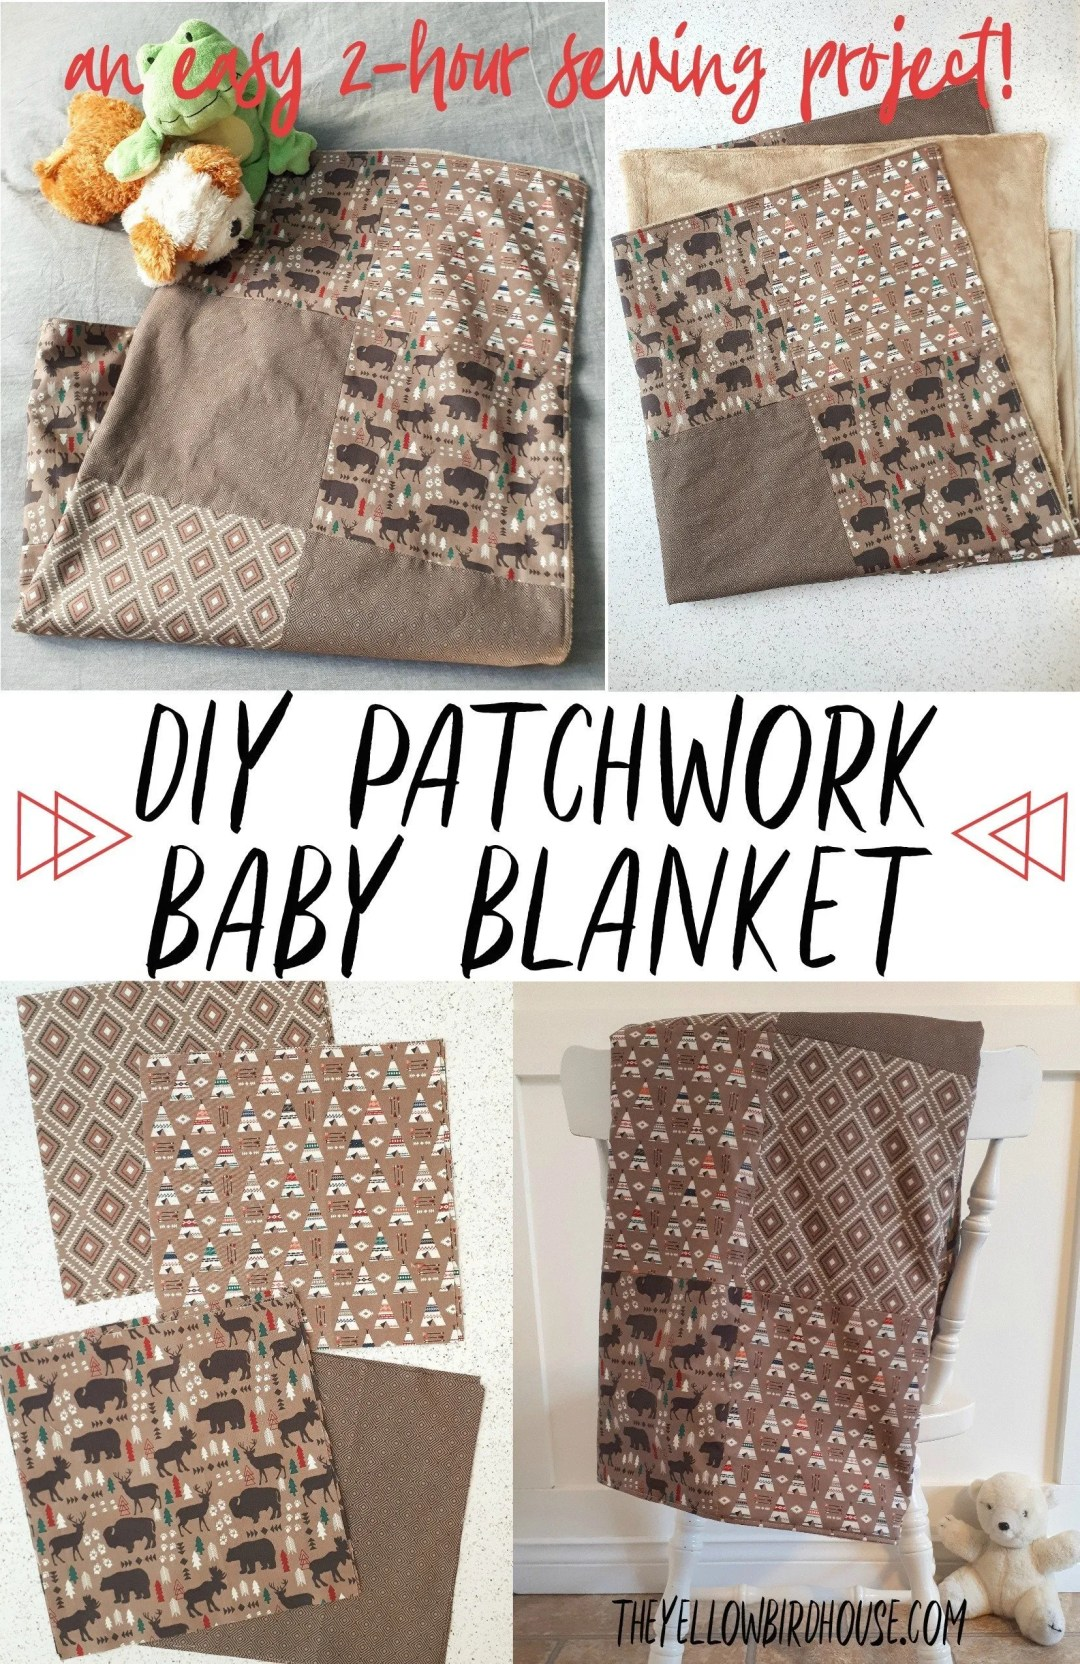 Sew a super cozy patchwork baby blanket in just 2 hours. Use 4 fat quarters and some minky fabric for this simple baby quilt tutorial. Learn how to sew this easy patchwork blanket with this free tutorial. This adorable baby quilt would be a great baby shower gift.